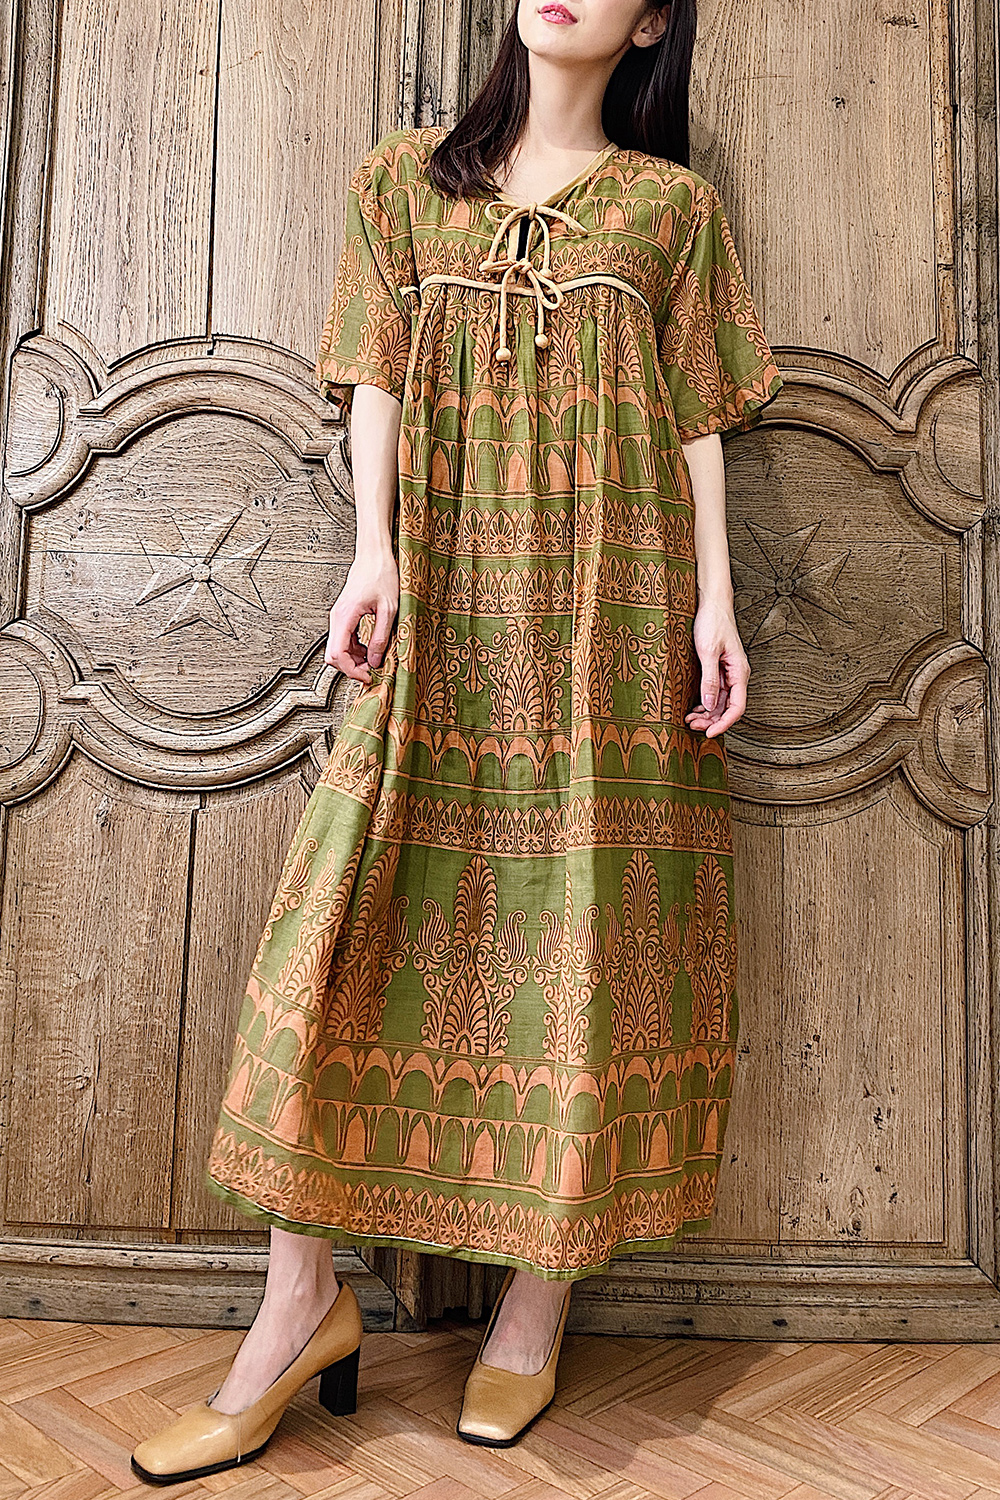 Moss Green × Orange Ethnic Print Dress